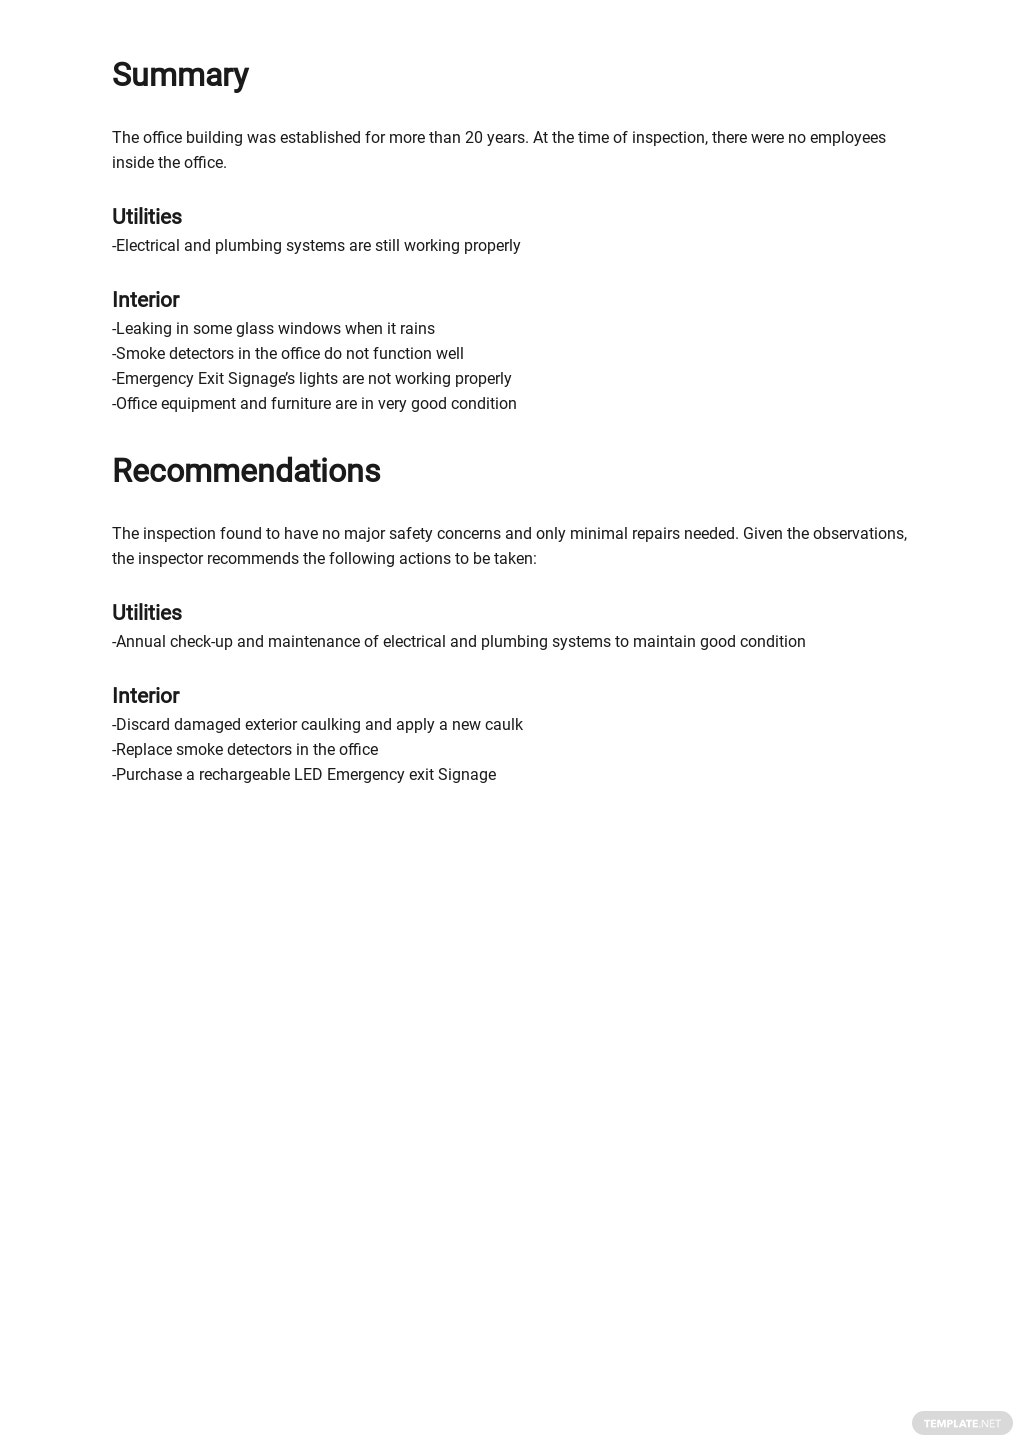 Free Monthly Safety Inspection Report Template 2.jpe